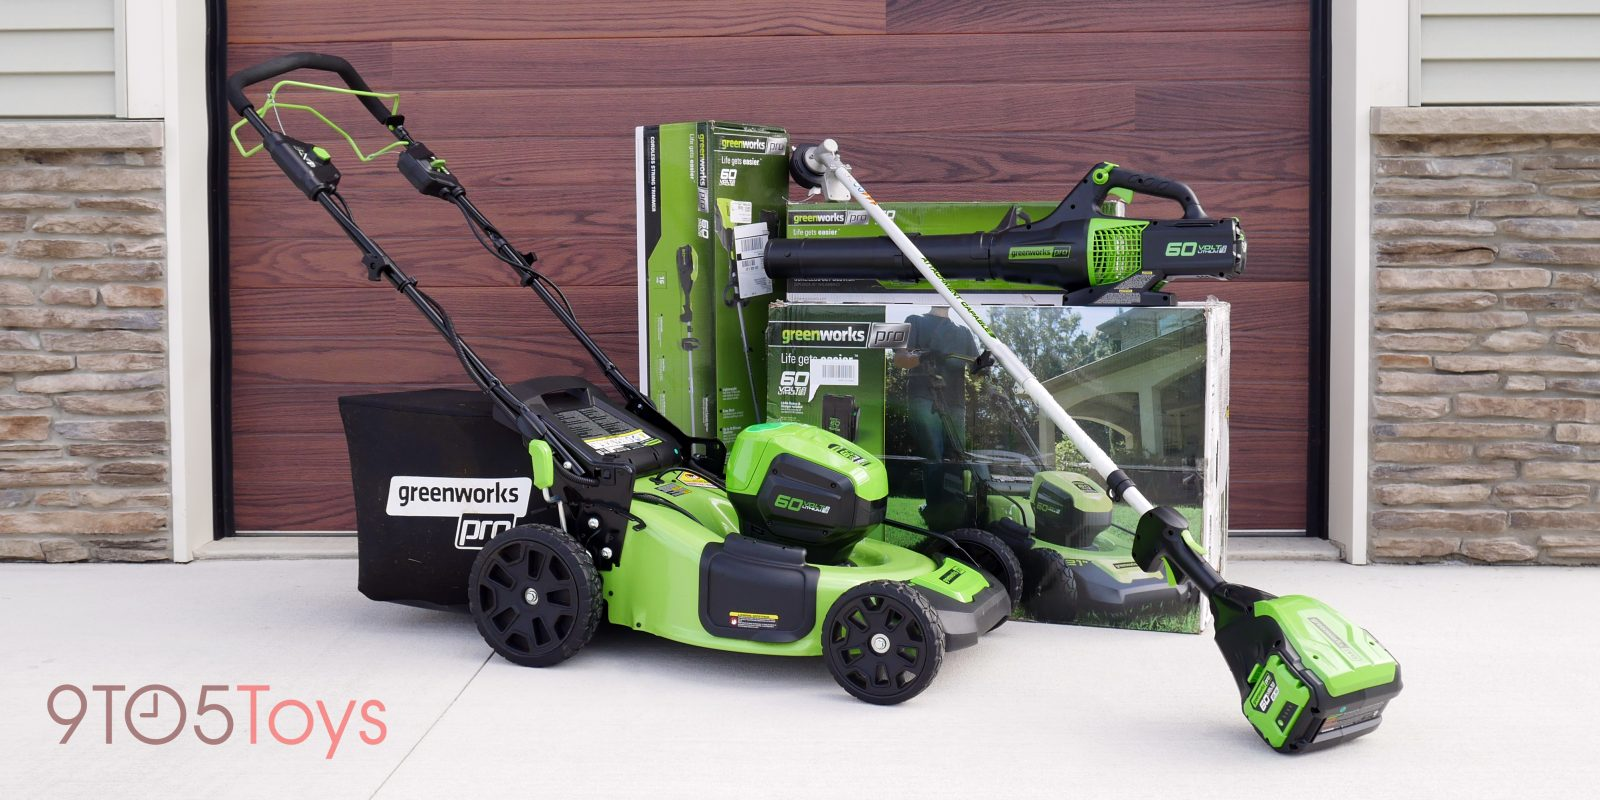 hight resolution of greenworks pro 60v review farewell gas outdoor tools i m all electric now